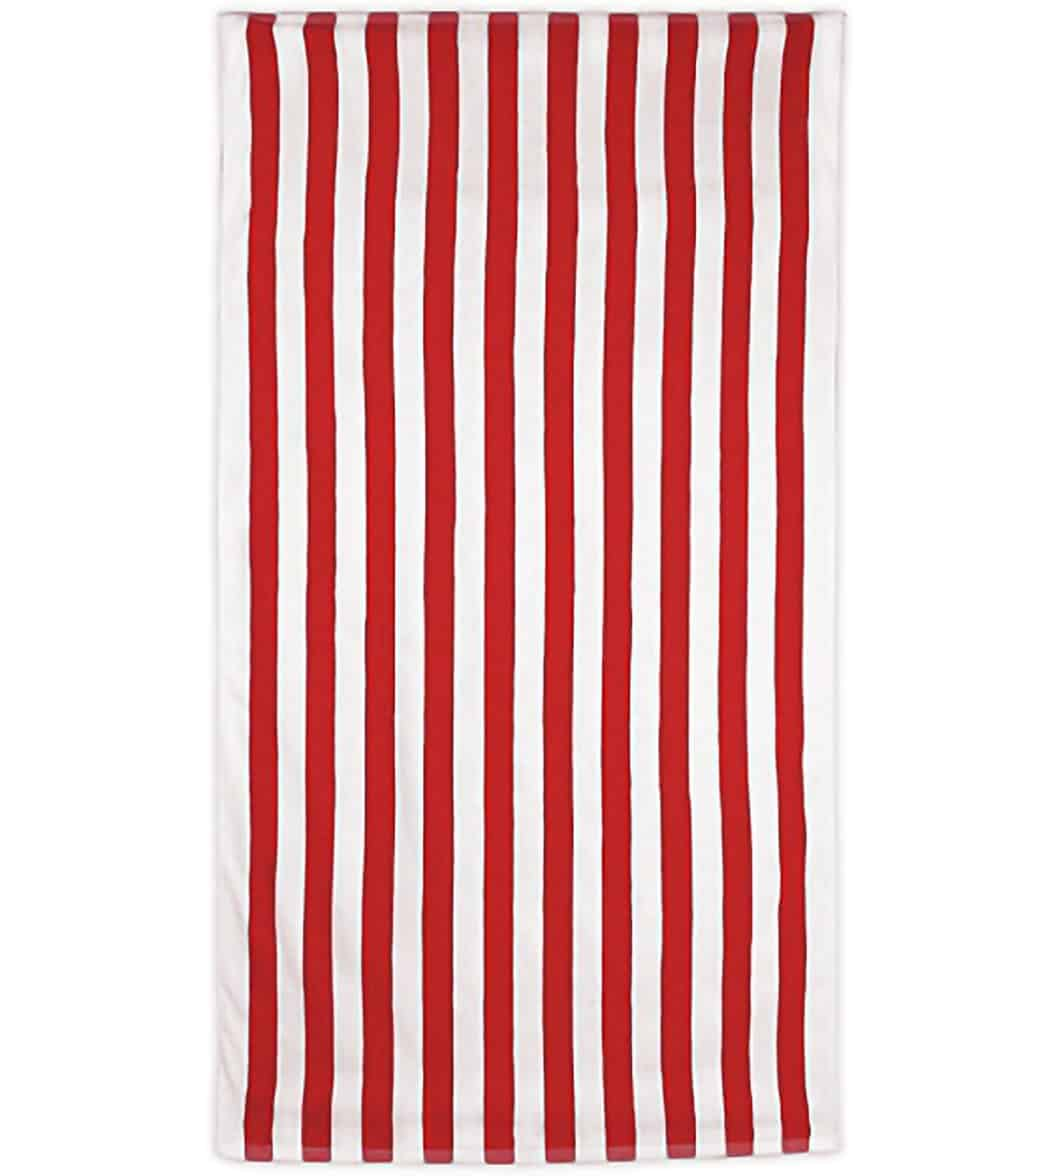 Red and white striped beach towel